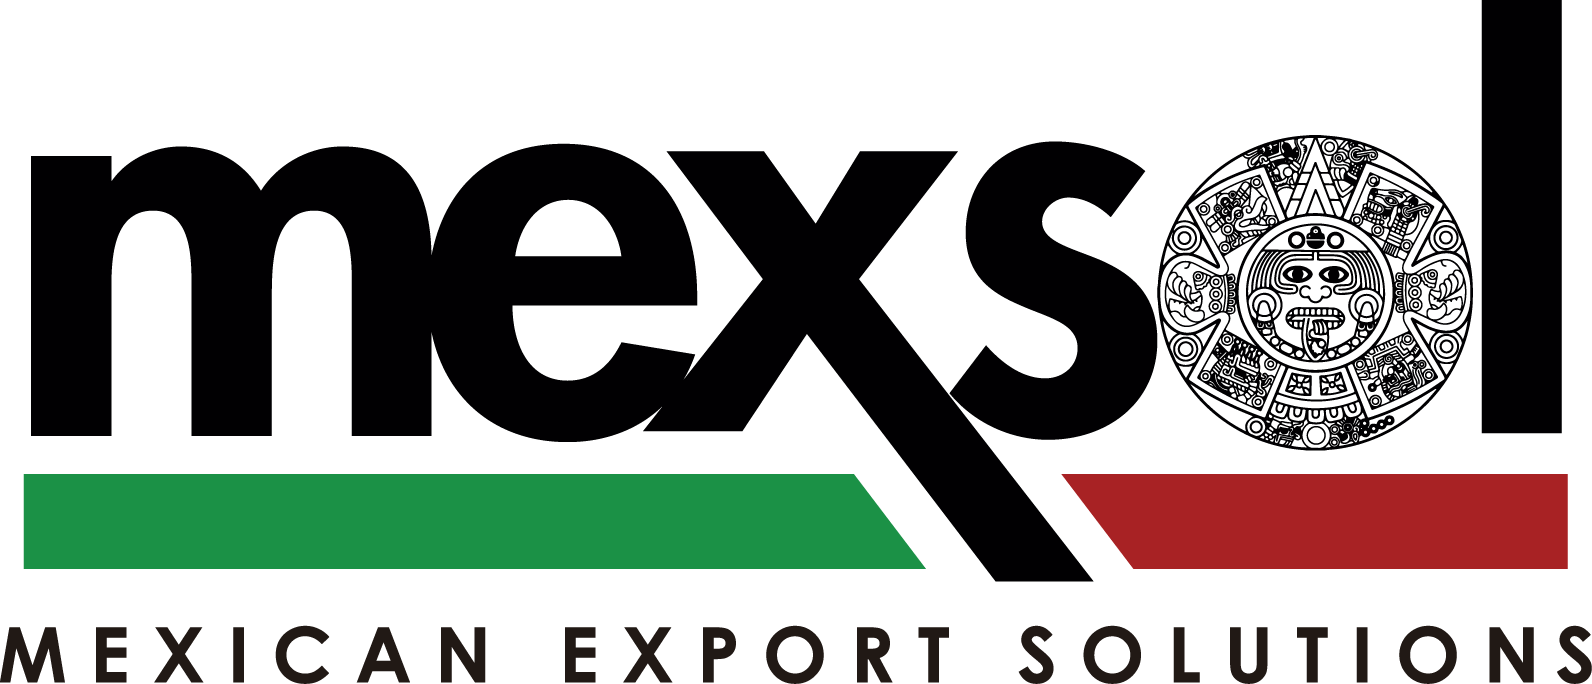 Mexican Export Solutions